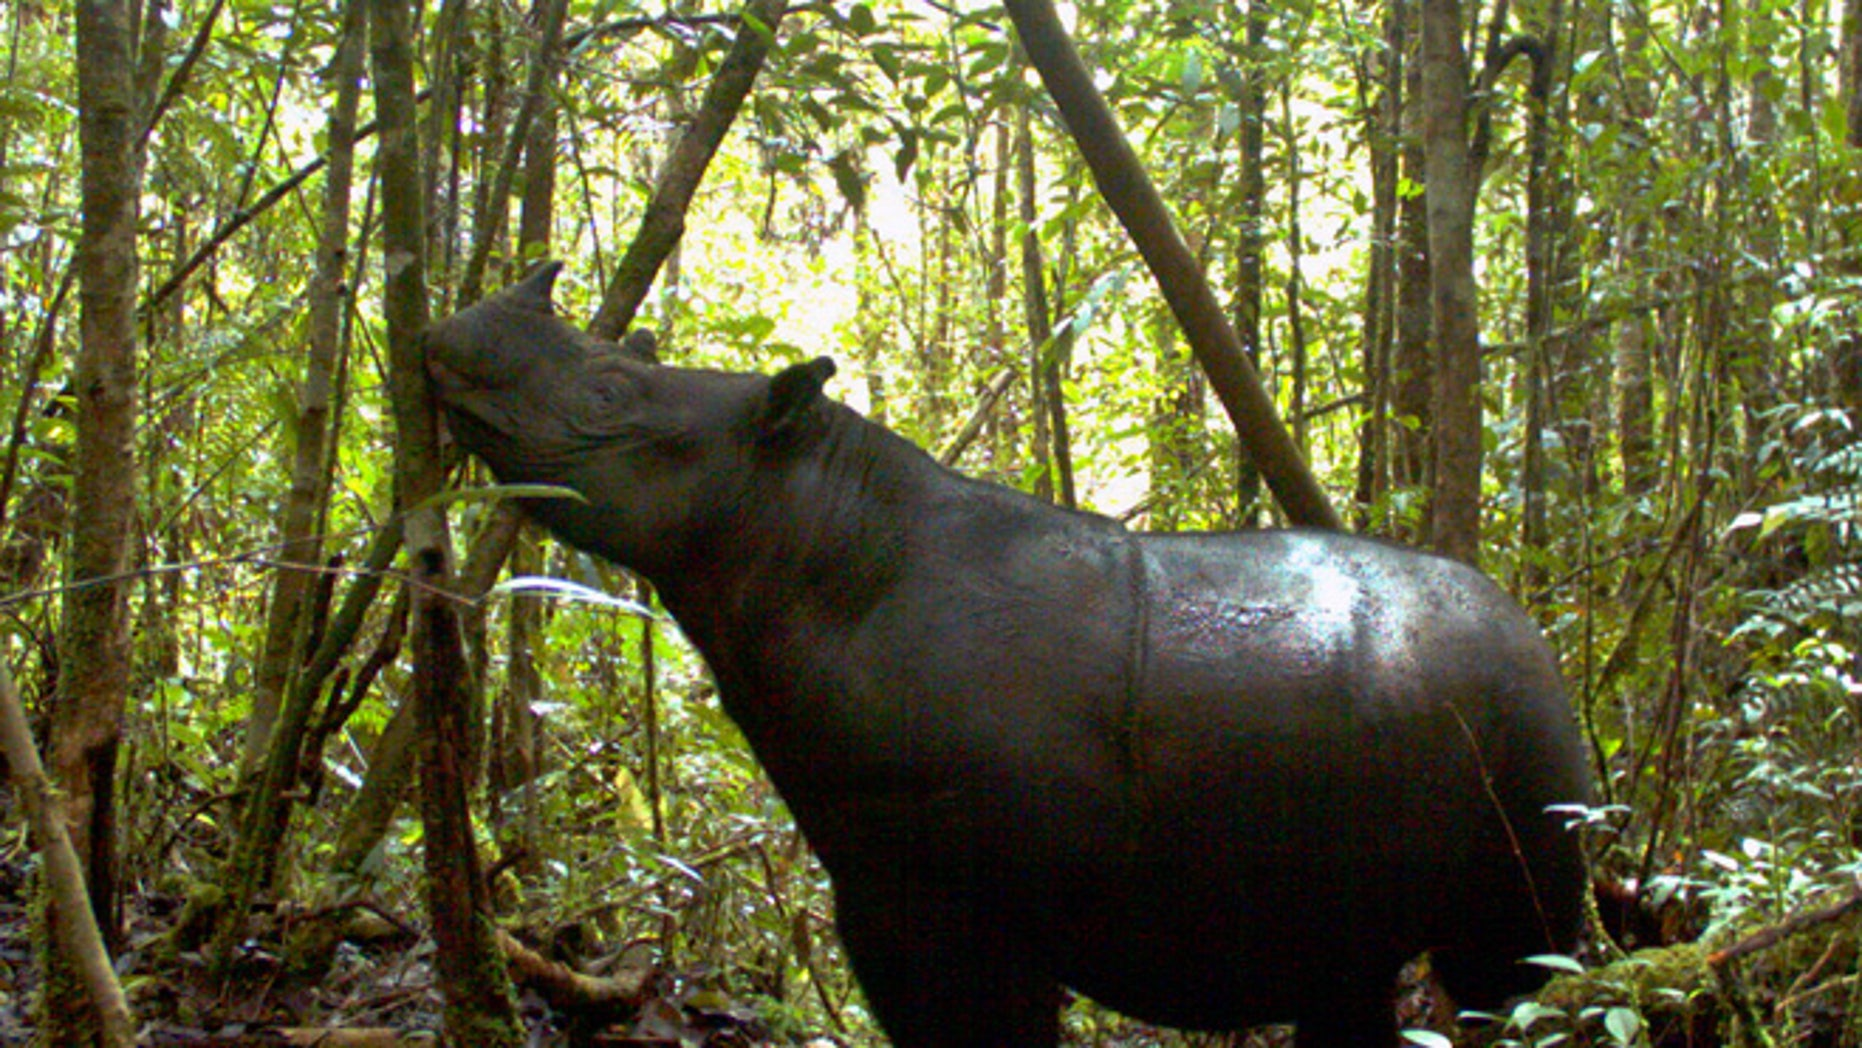 A Sumatran rhino roams at Gunung Leuser National Park in Aceh province, Indonesia. A conservationist from the foundation said Thursday, Aug. 9, 2012 that seven of the world's rarest rhinoceroses were photographed at the national park. It is the first sighting there in 26 years.